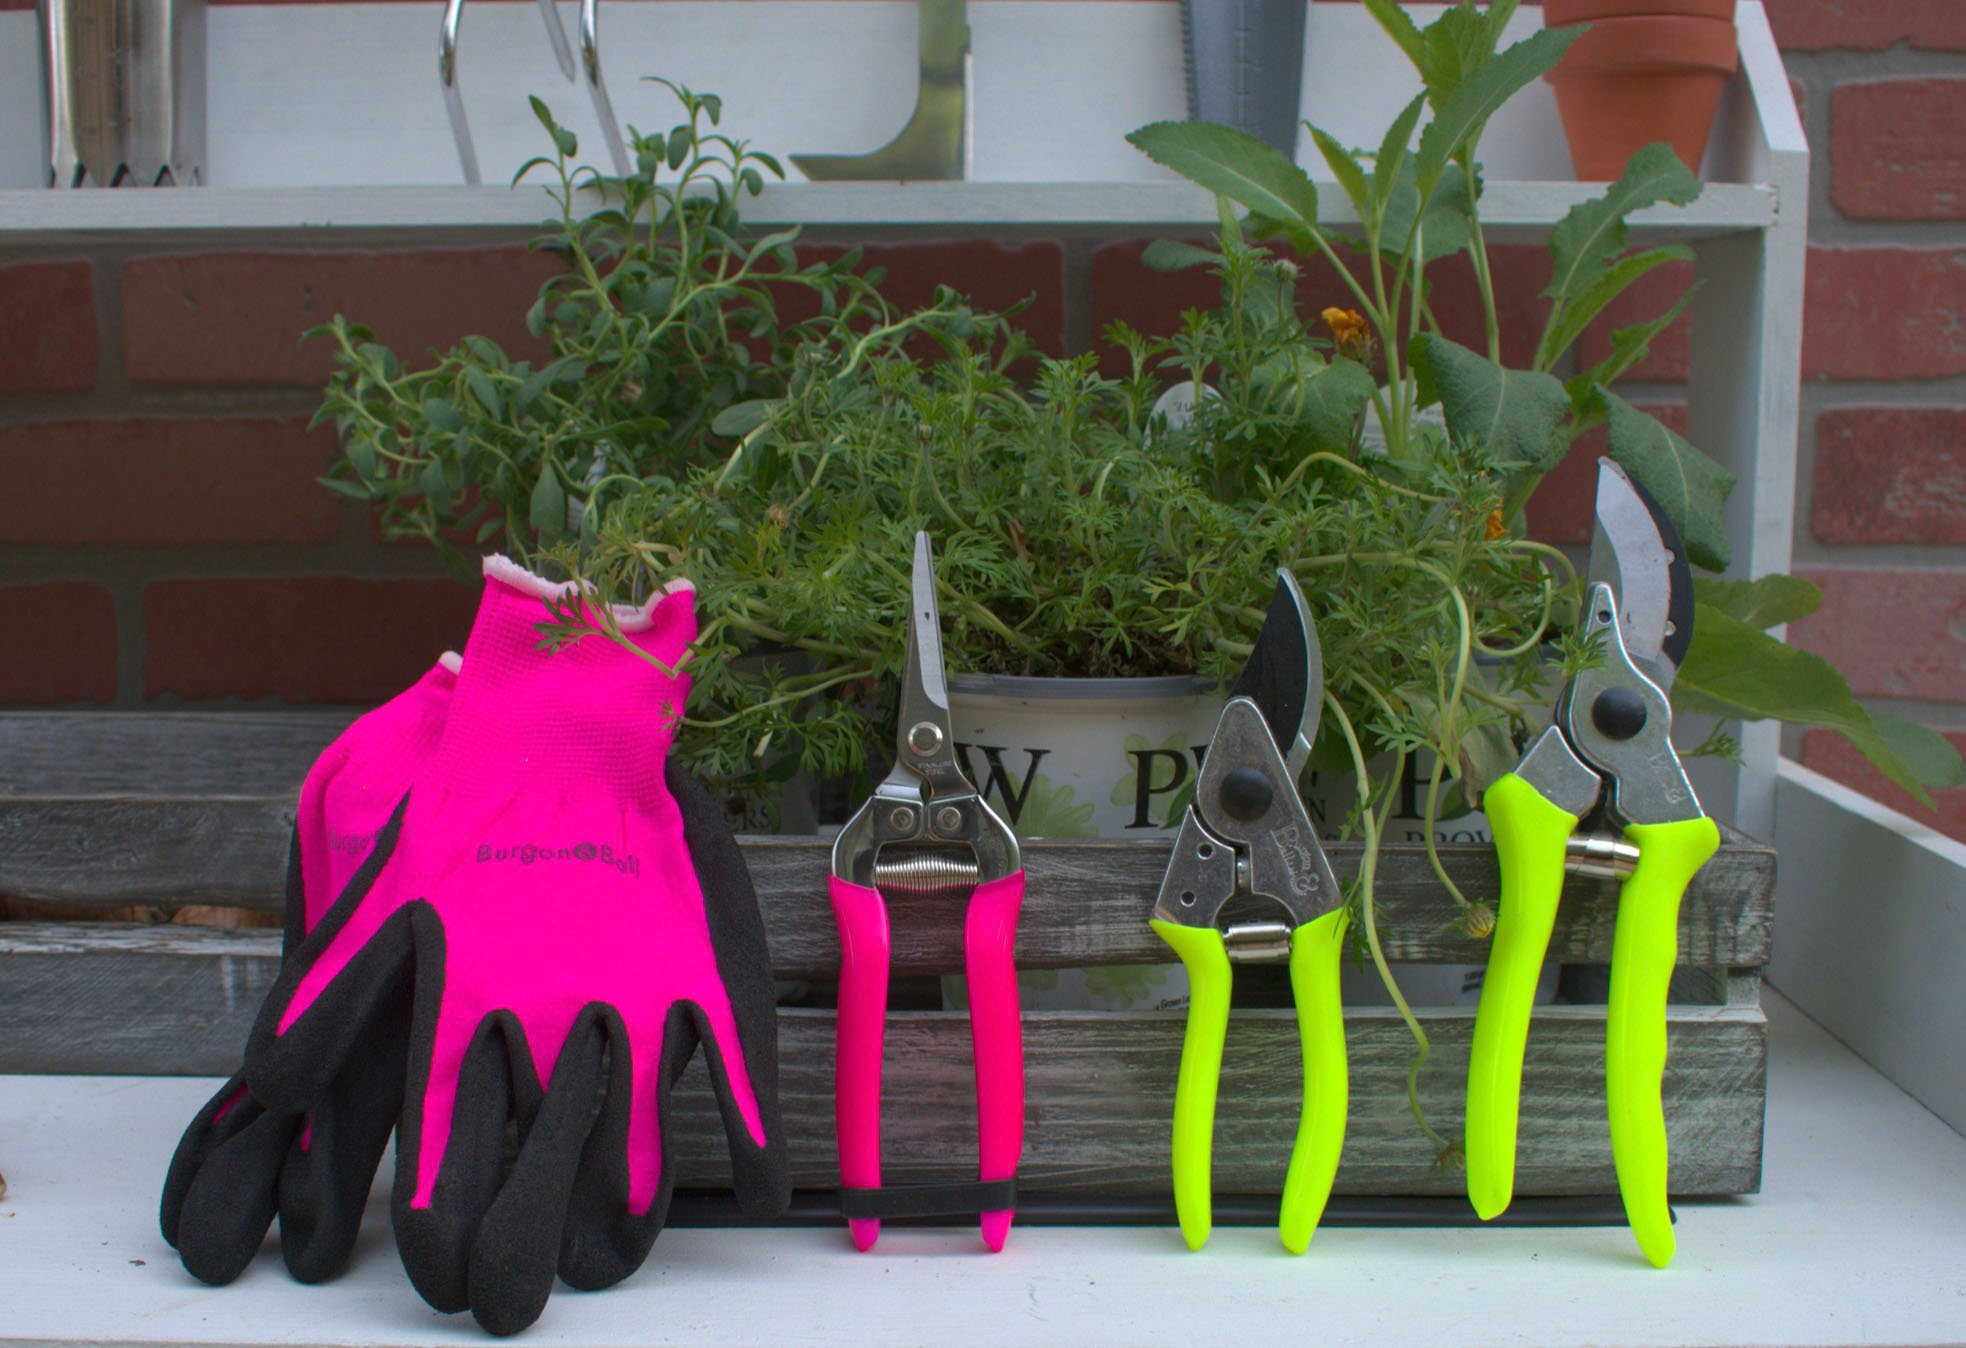 Corona Tools fluorescent gloves and hand pruners on a potting bench